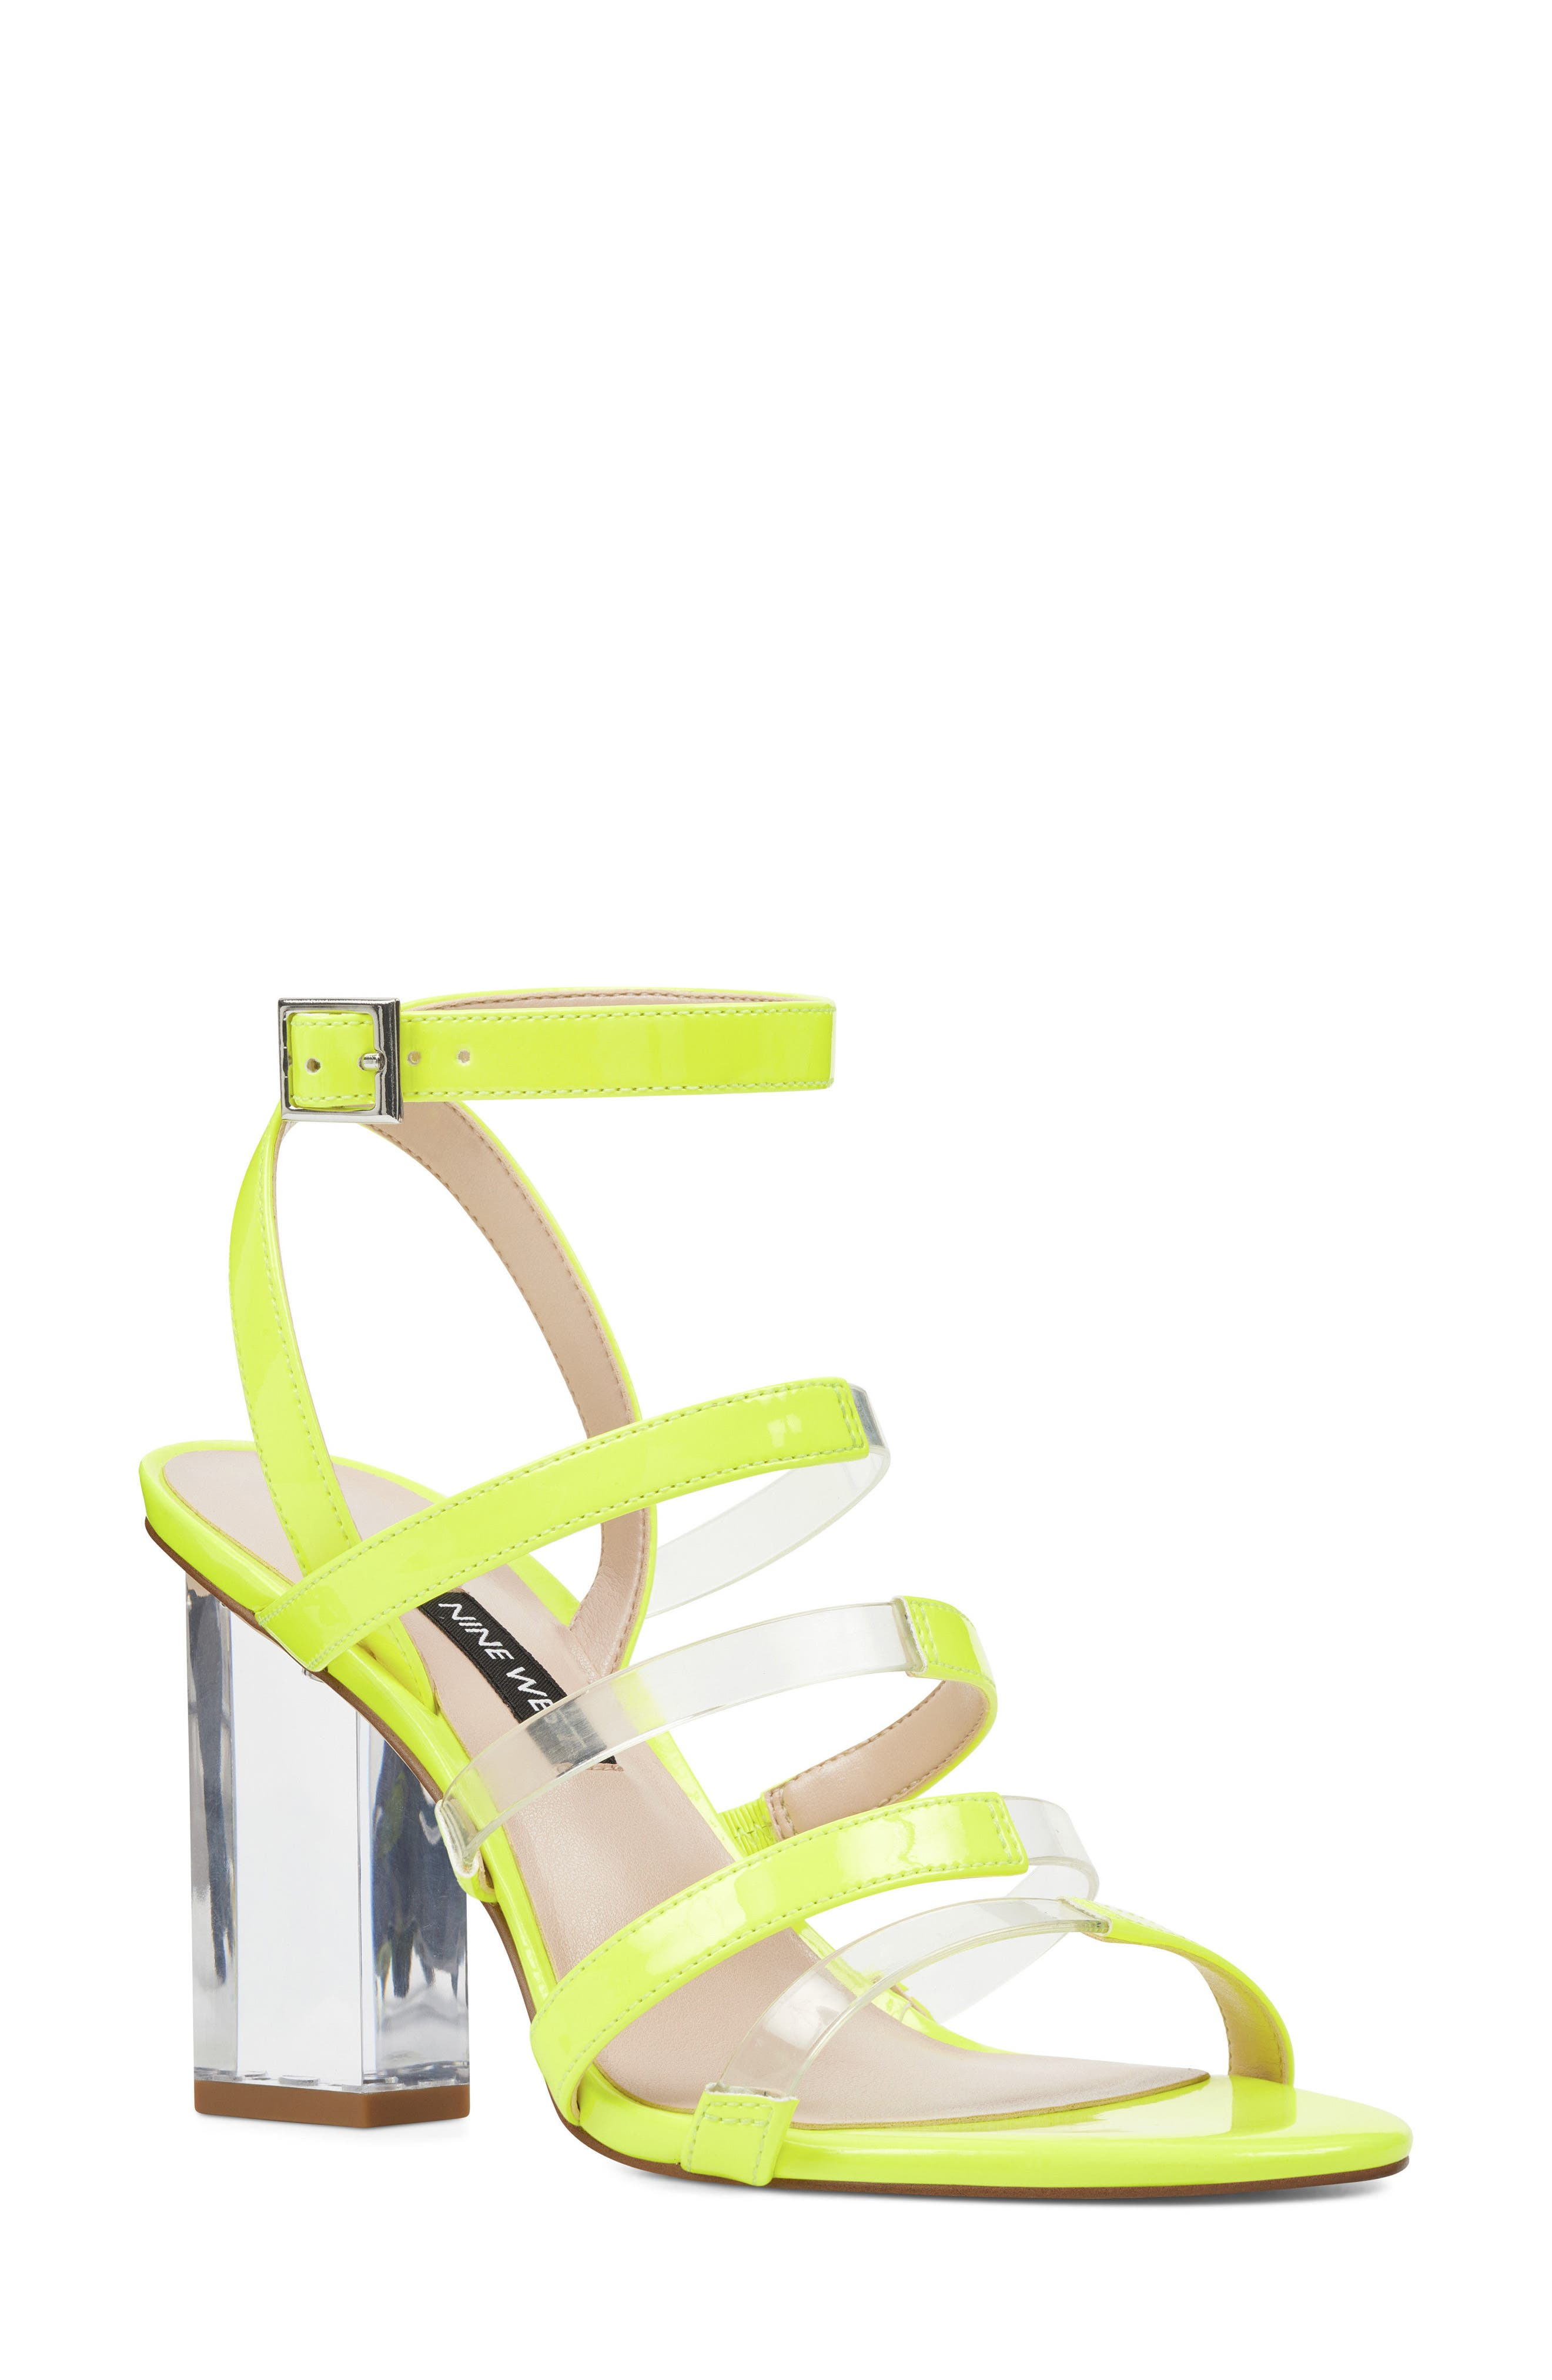 Fazzani Cage Sandal,                             Main thumbnail 1, color,                             Clear/ Yellow Faux Leather